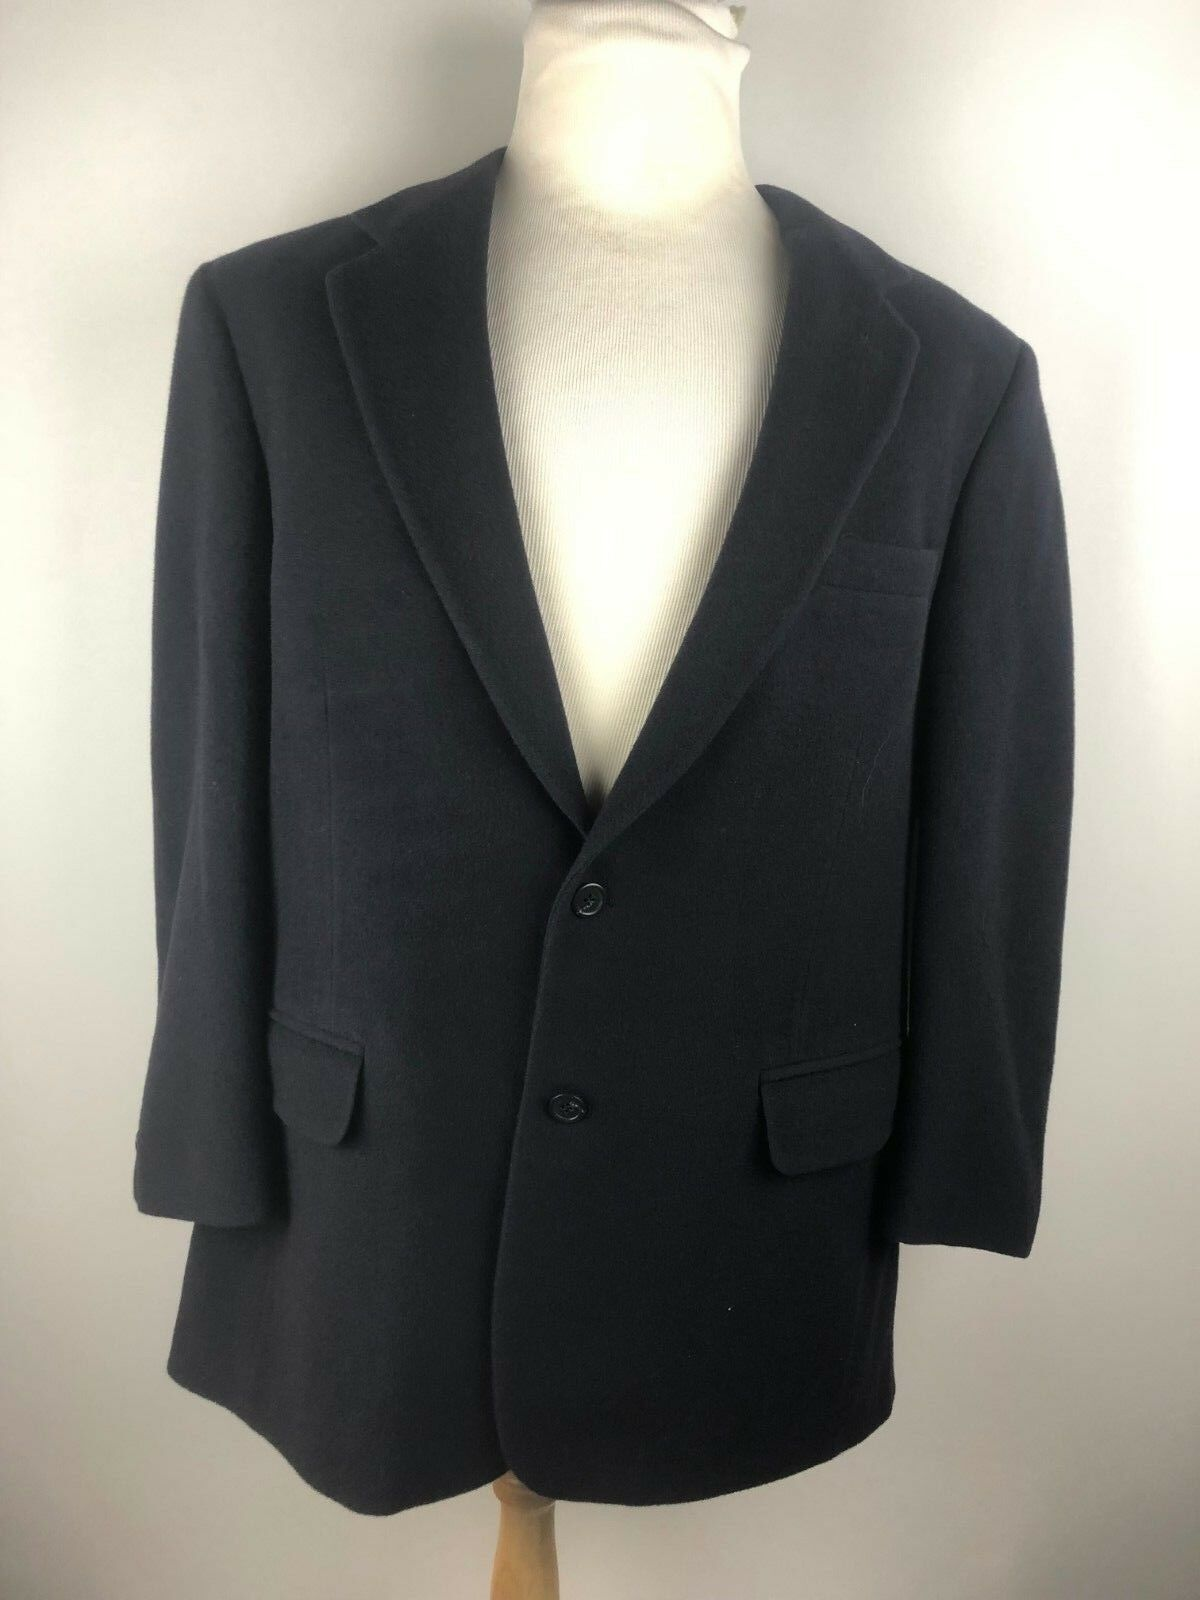 Vintage Brooks Bredhers 100% Camel Hair 2 Button Sport Coat Blazer Mens 42R USA